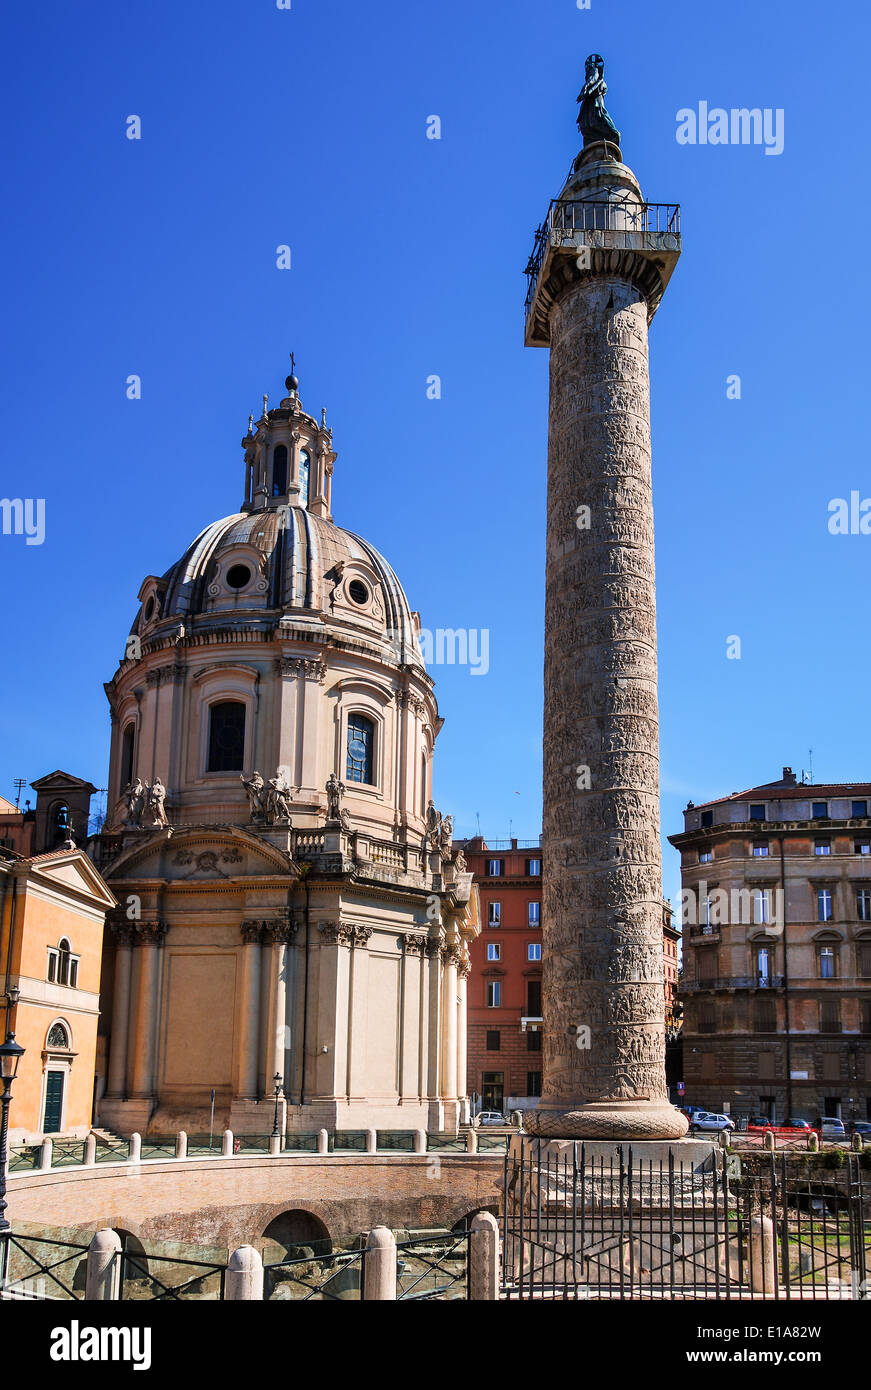 rome italy dating Grab your spouse for an italy date night full of the sights and smells of italy experience the traditions of italy and create your own italian kitchen in the heart of rome.